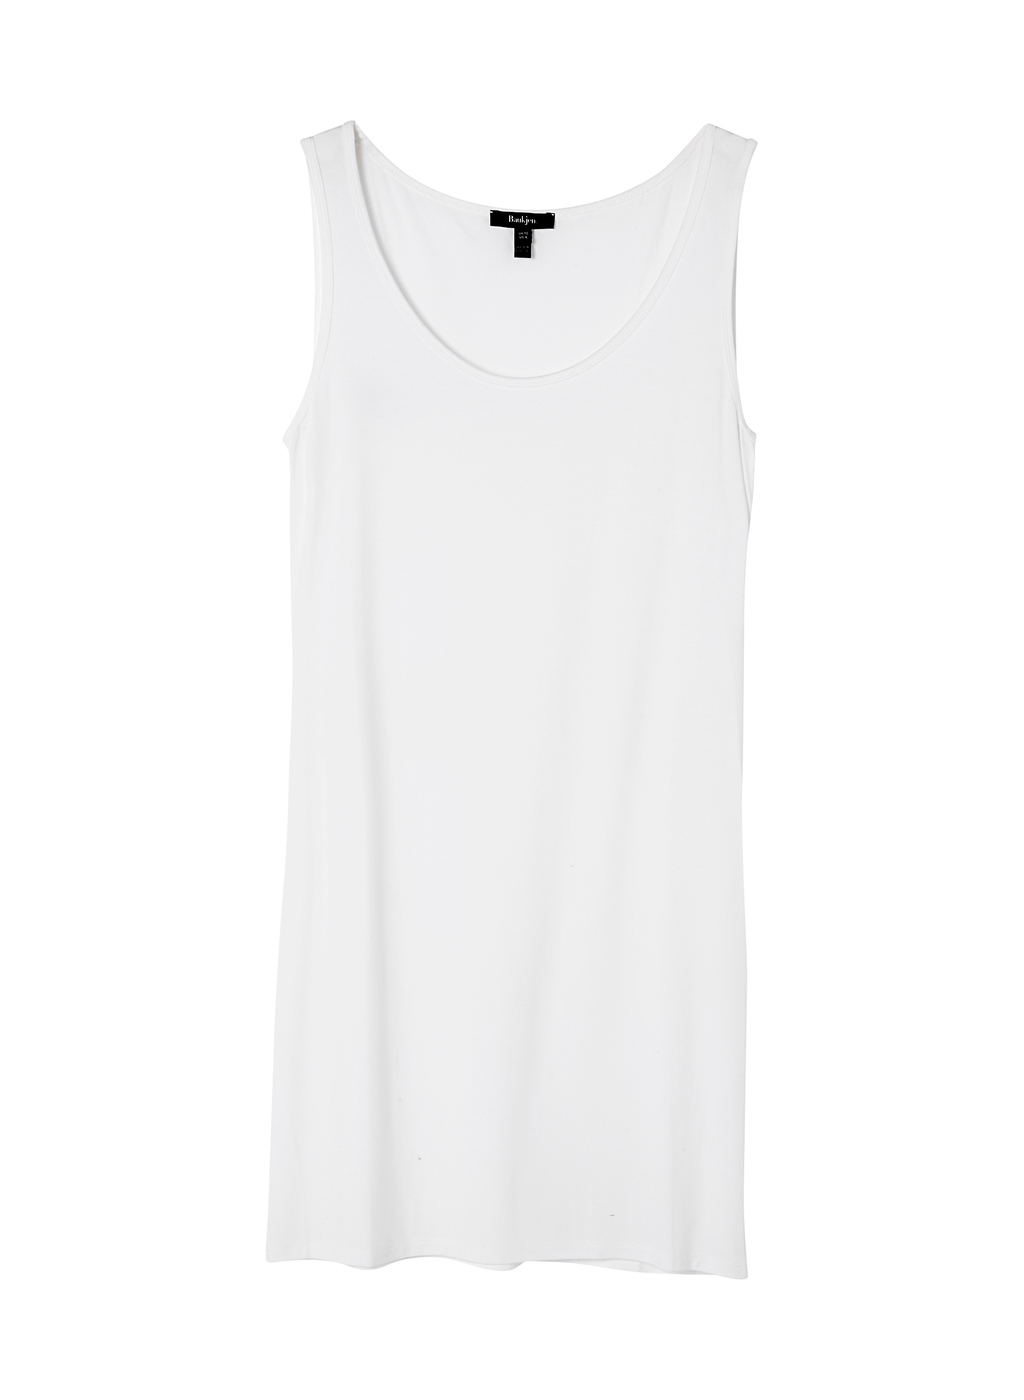 Womenswear Long Line Tank - sleeve style: standard vest straps/shoulder straps; pattern: plain; length: below the bottom; style: vest top; predominant colour: white; occasions: casual; neckline: scoop; fibres: viscose/rayon - stretch; fit: body skimming; sleeve length: sleeveless; pattern type: fabric; texture group: jersey - stretchy/drapey; season: a/w 2014